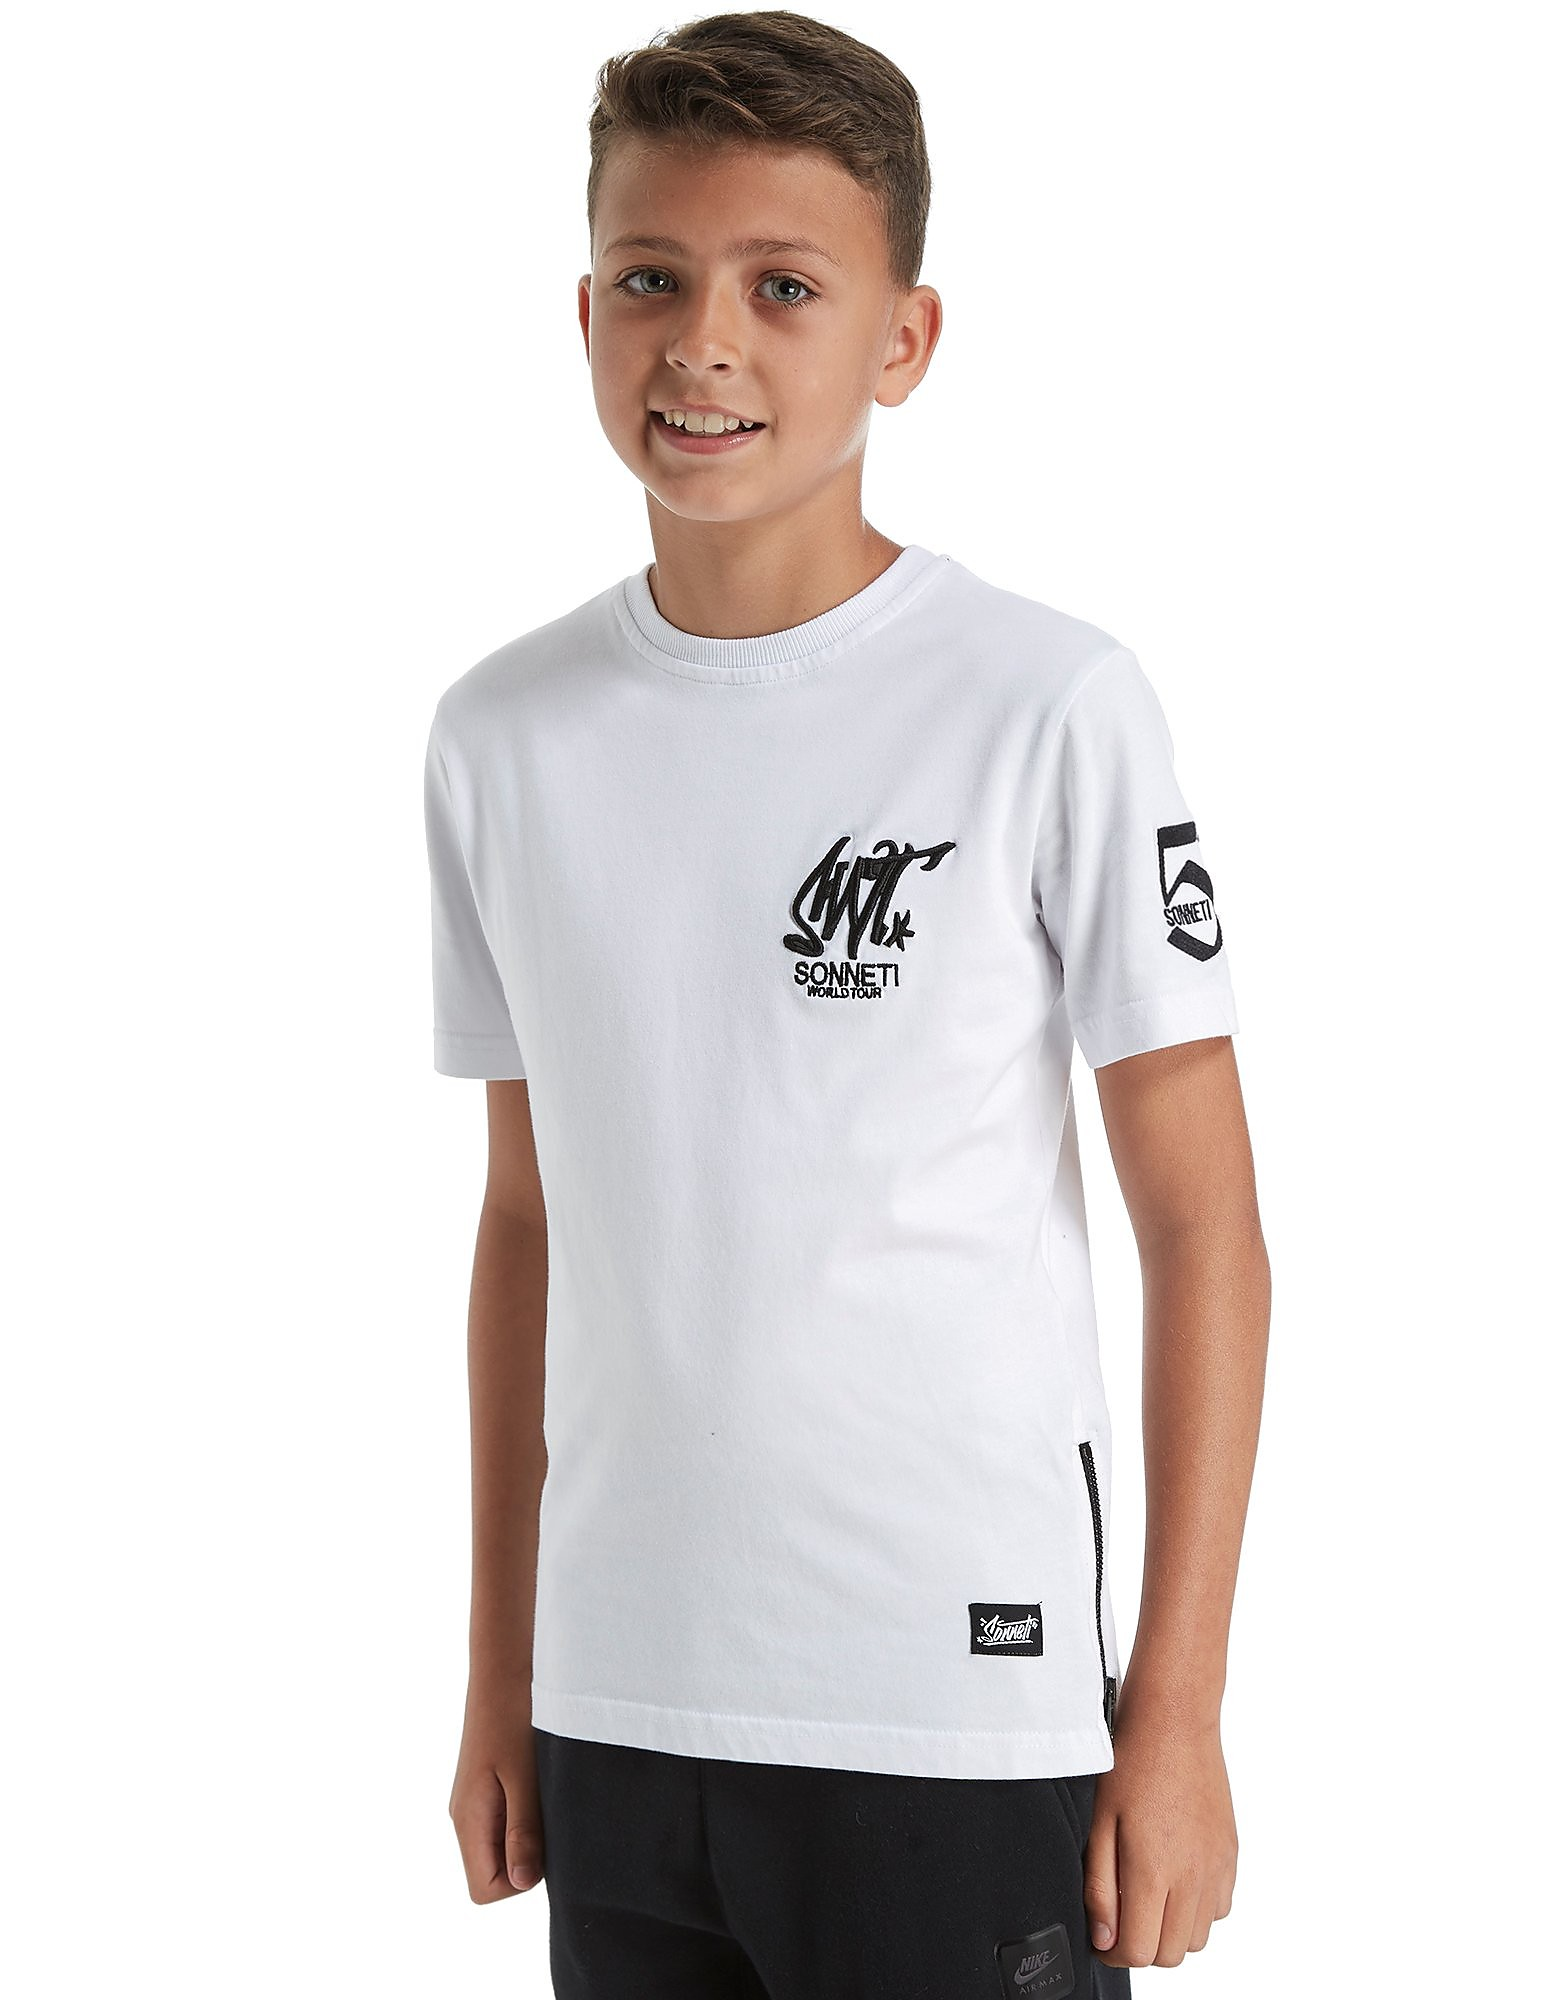 Sonneti Embed T-Shirt Junior